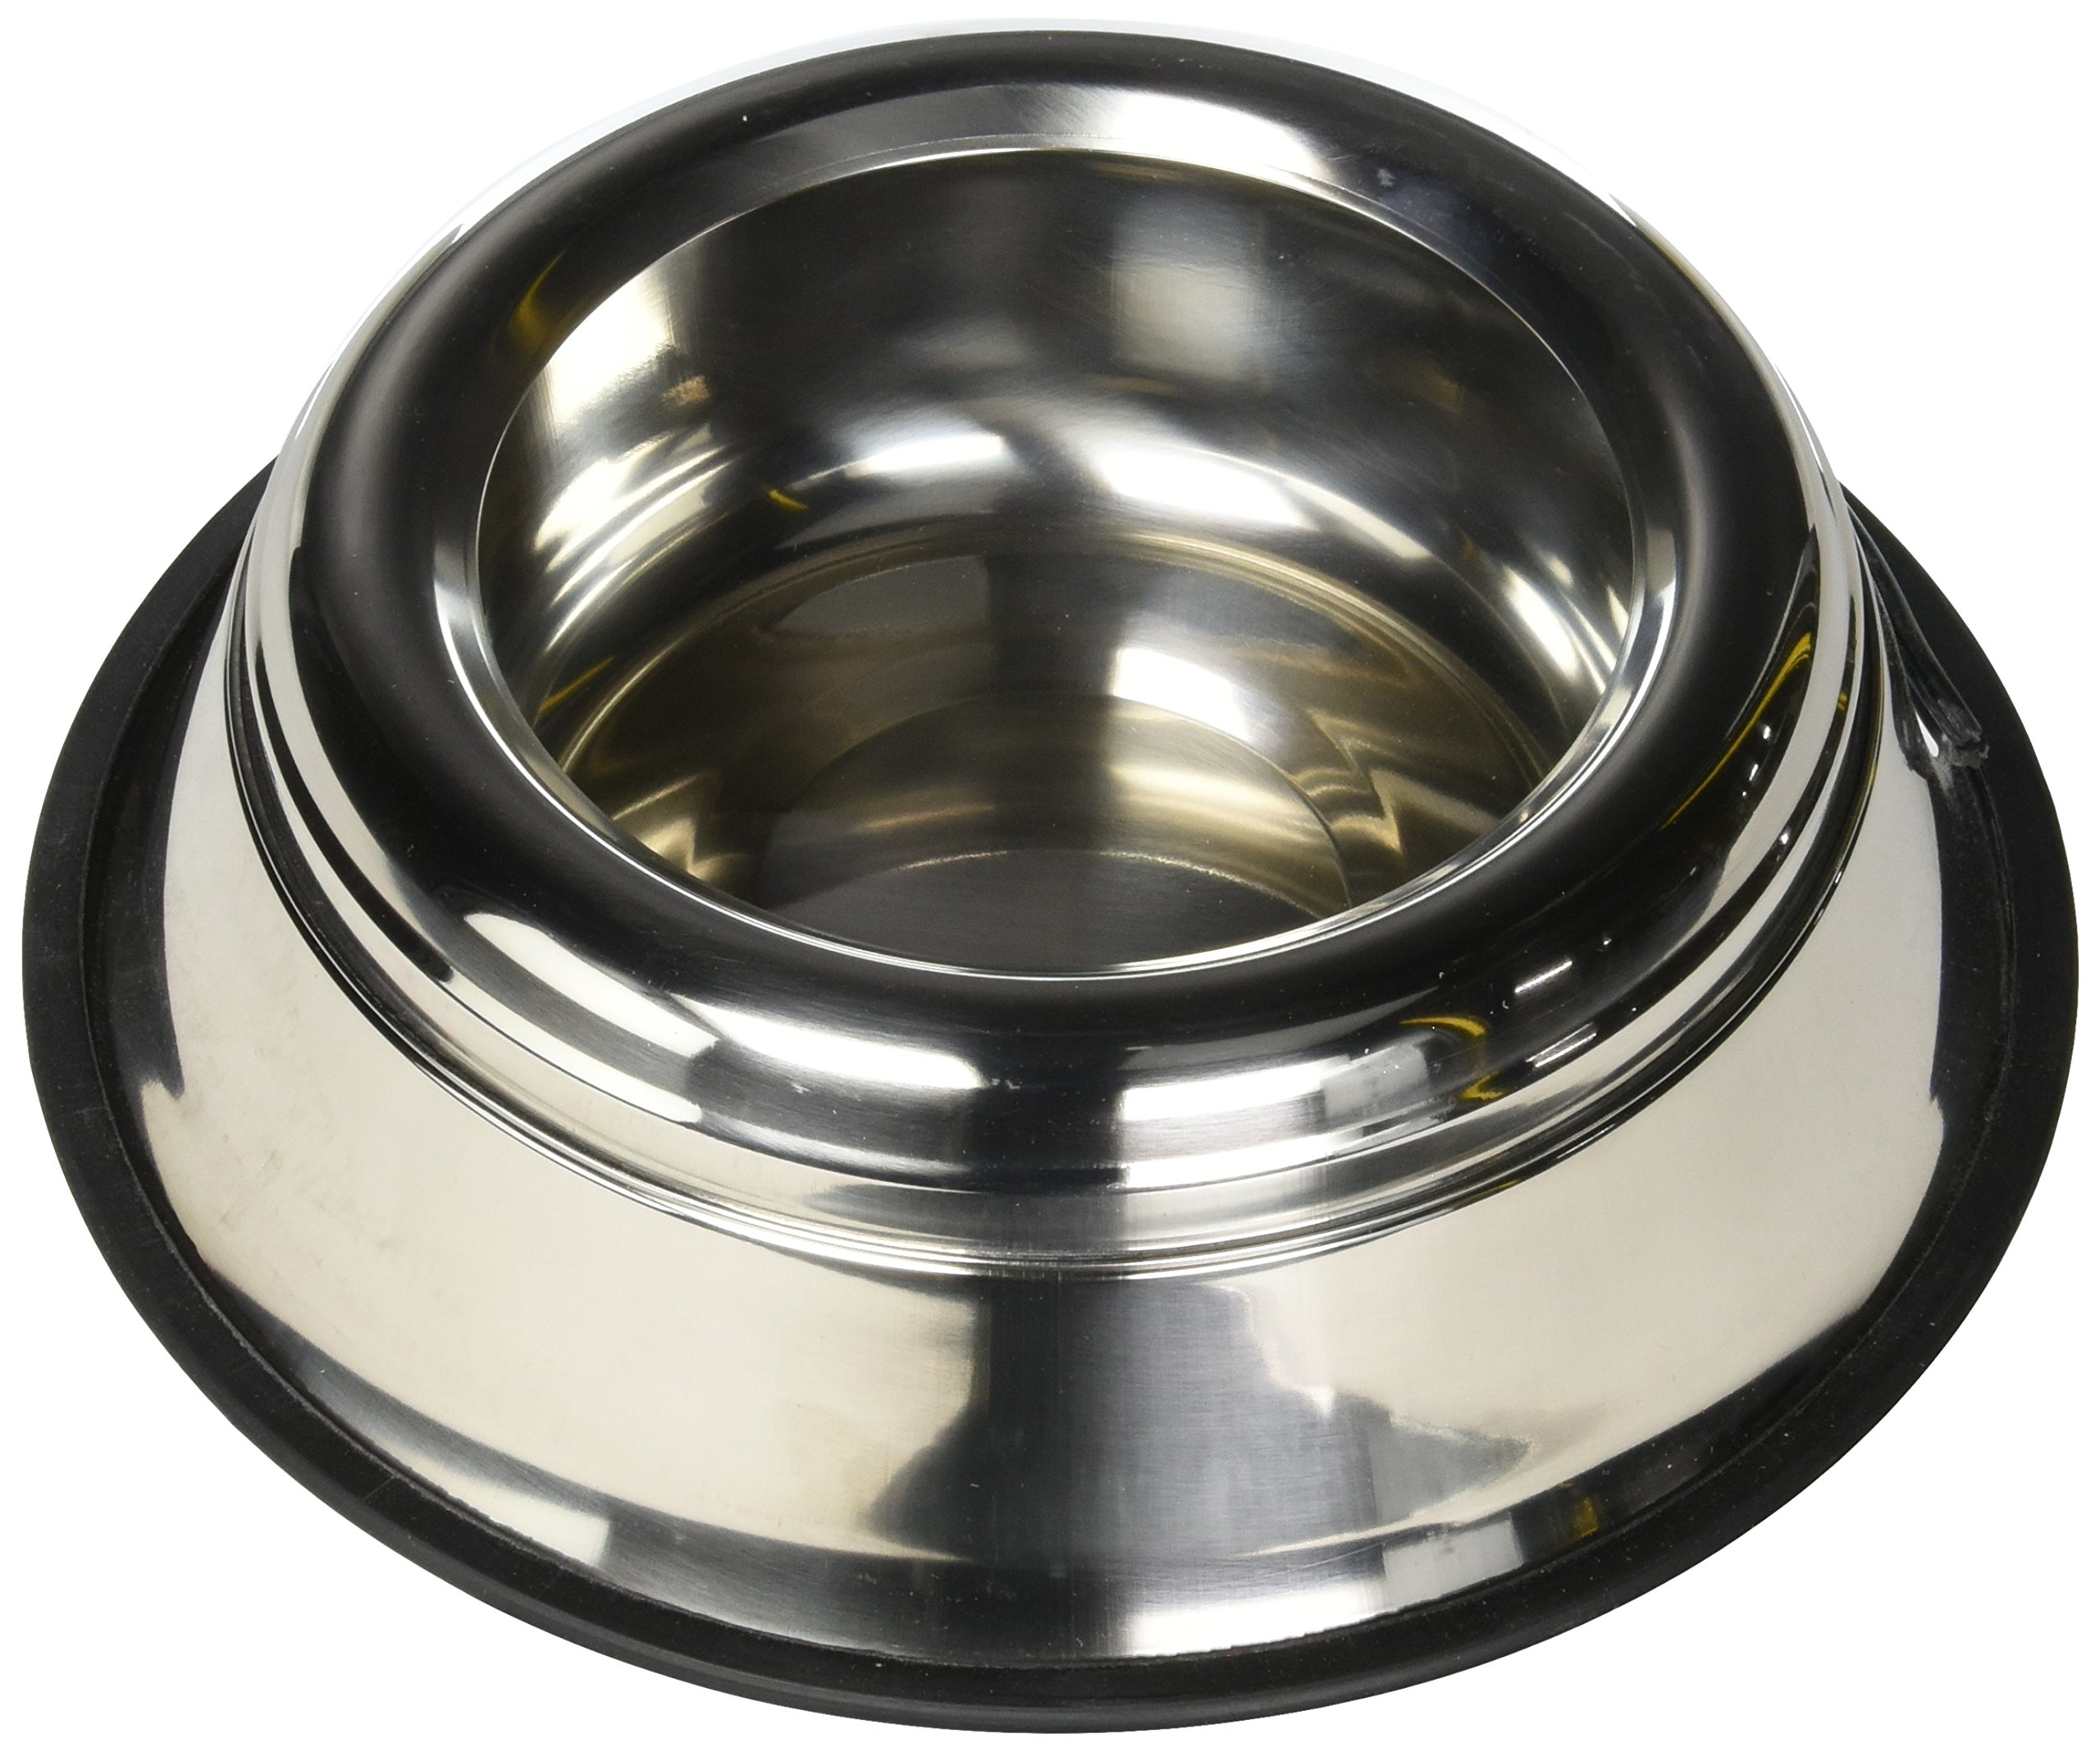 Indipets Stainless Steel Spill Proof - Splash Free No Tip Anti Skid Dish easy pick up grip handle, 64-Ounce